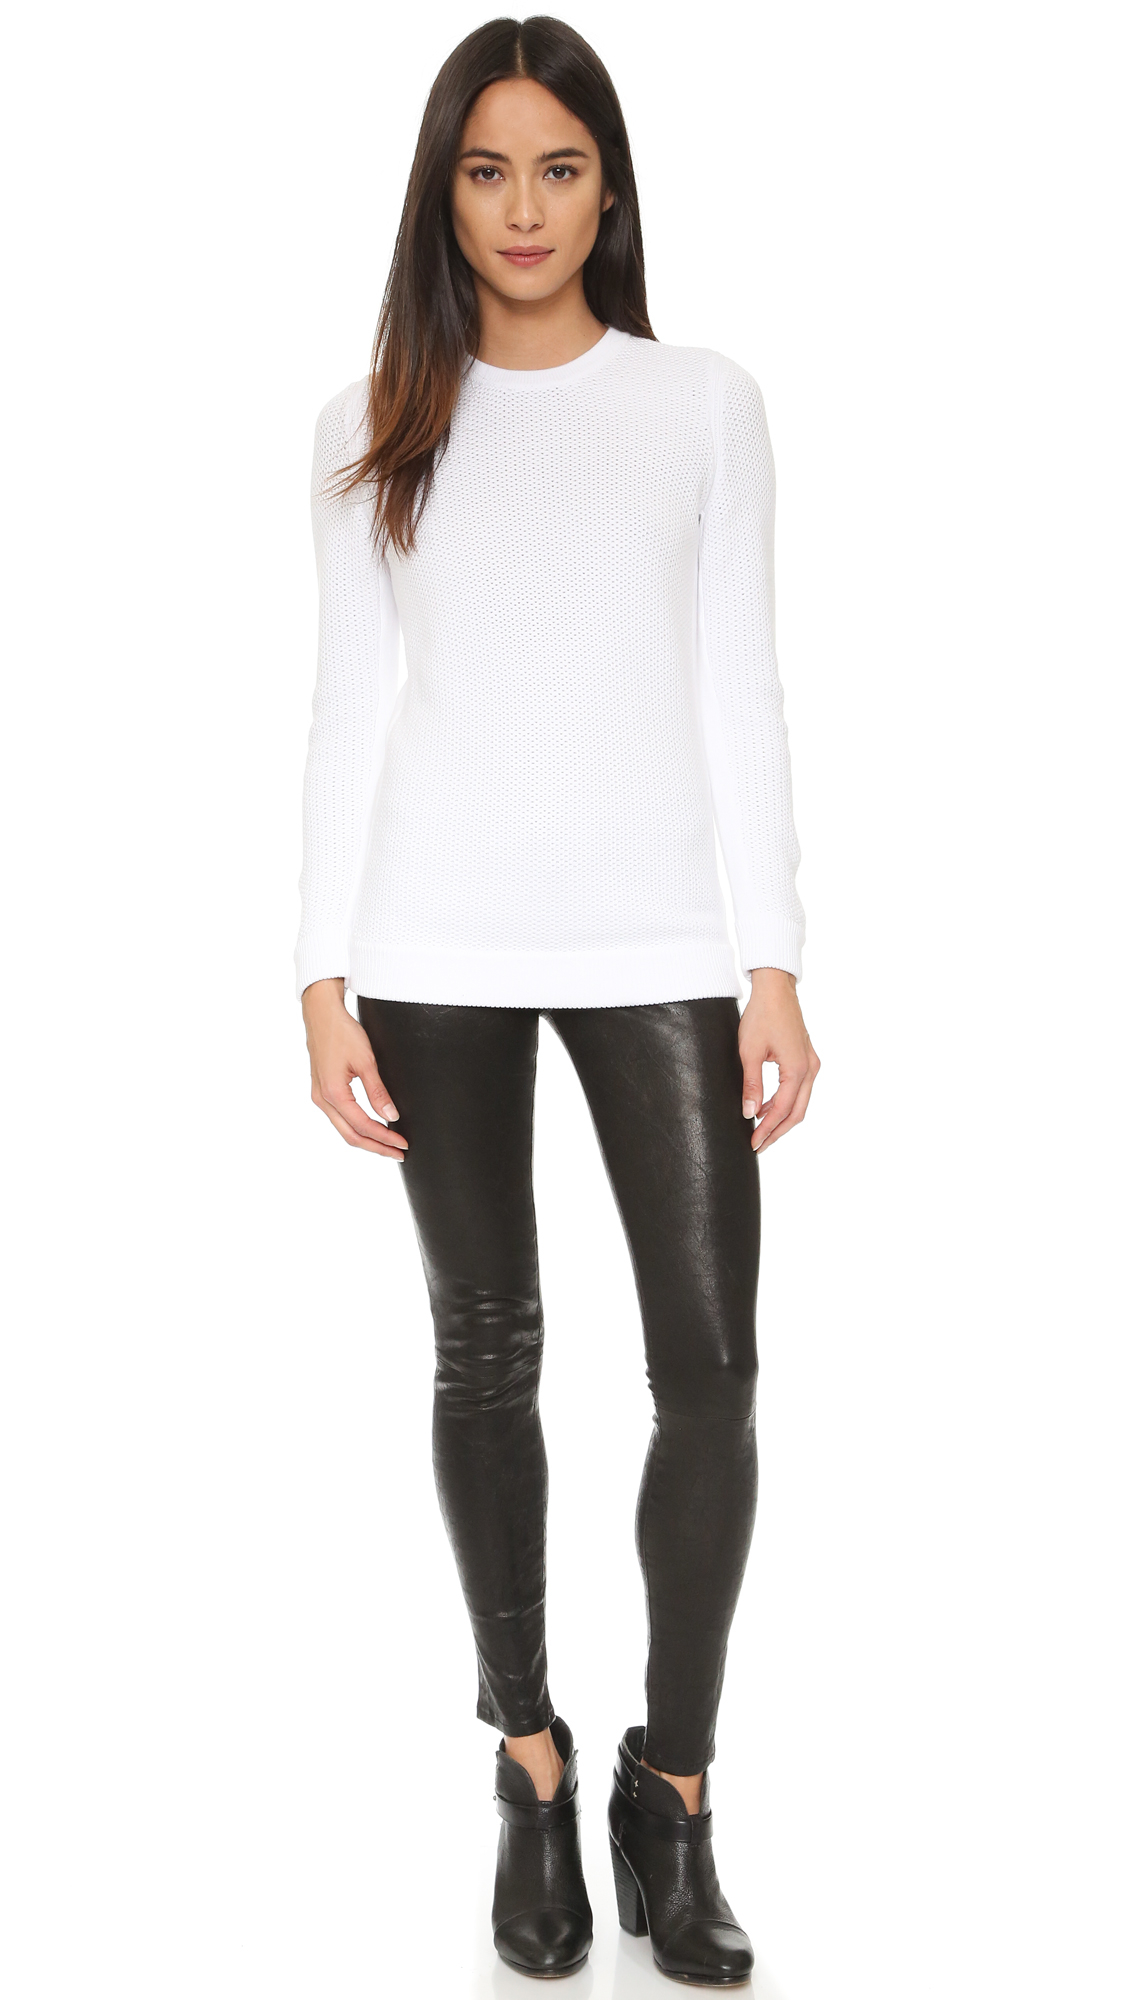 Rag & bone Rita Boyfriend Sweater in White | Lyst